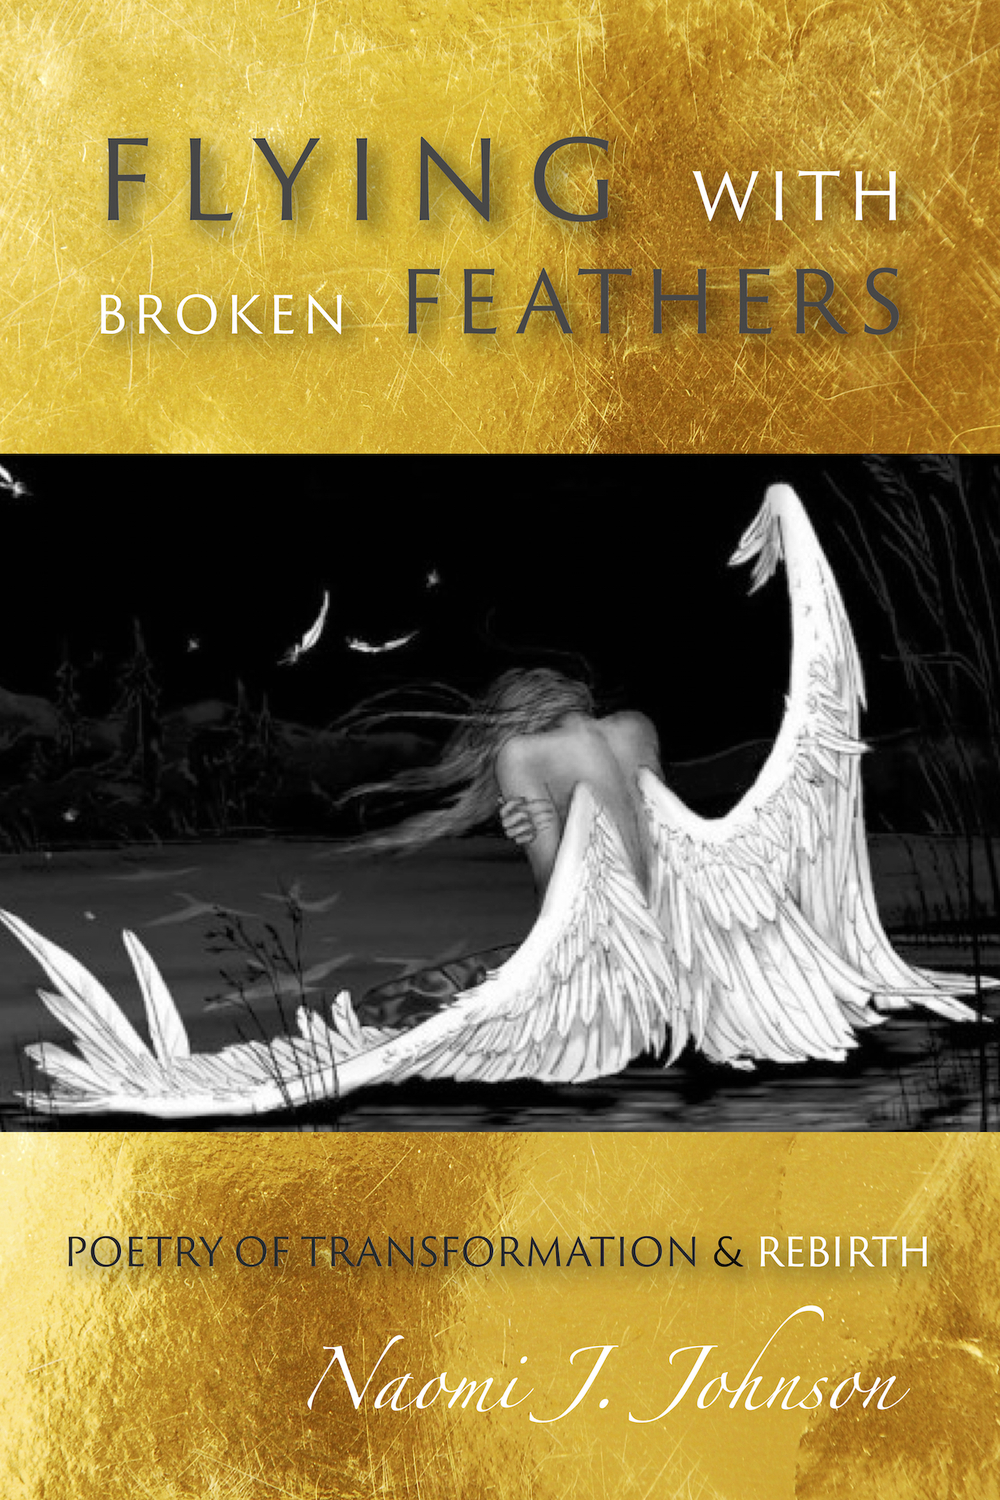 Flying with Broken Feathers - FrontCover.jpg